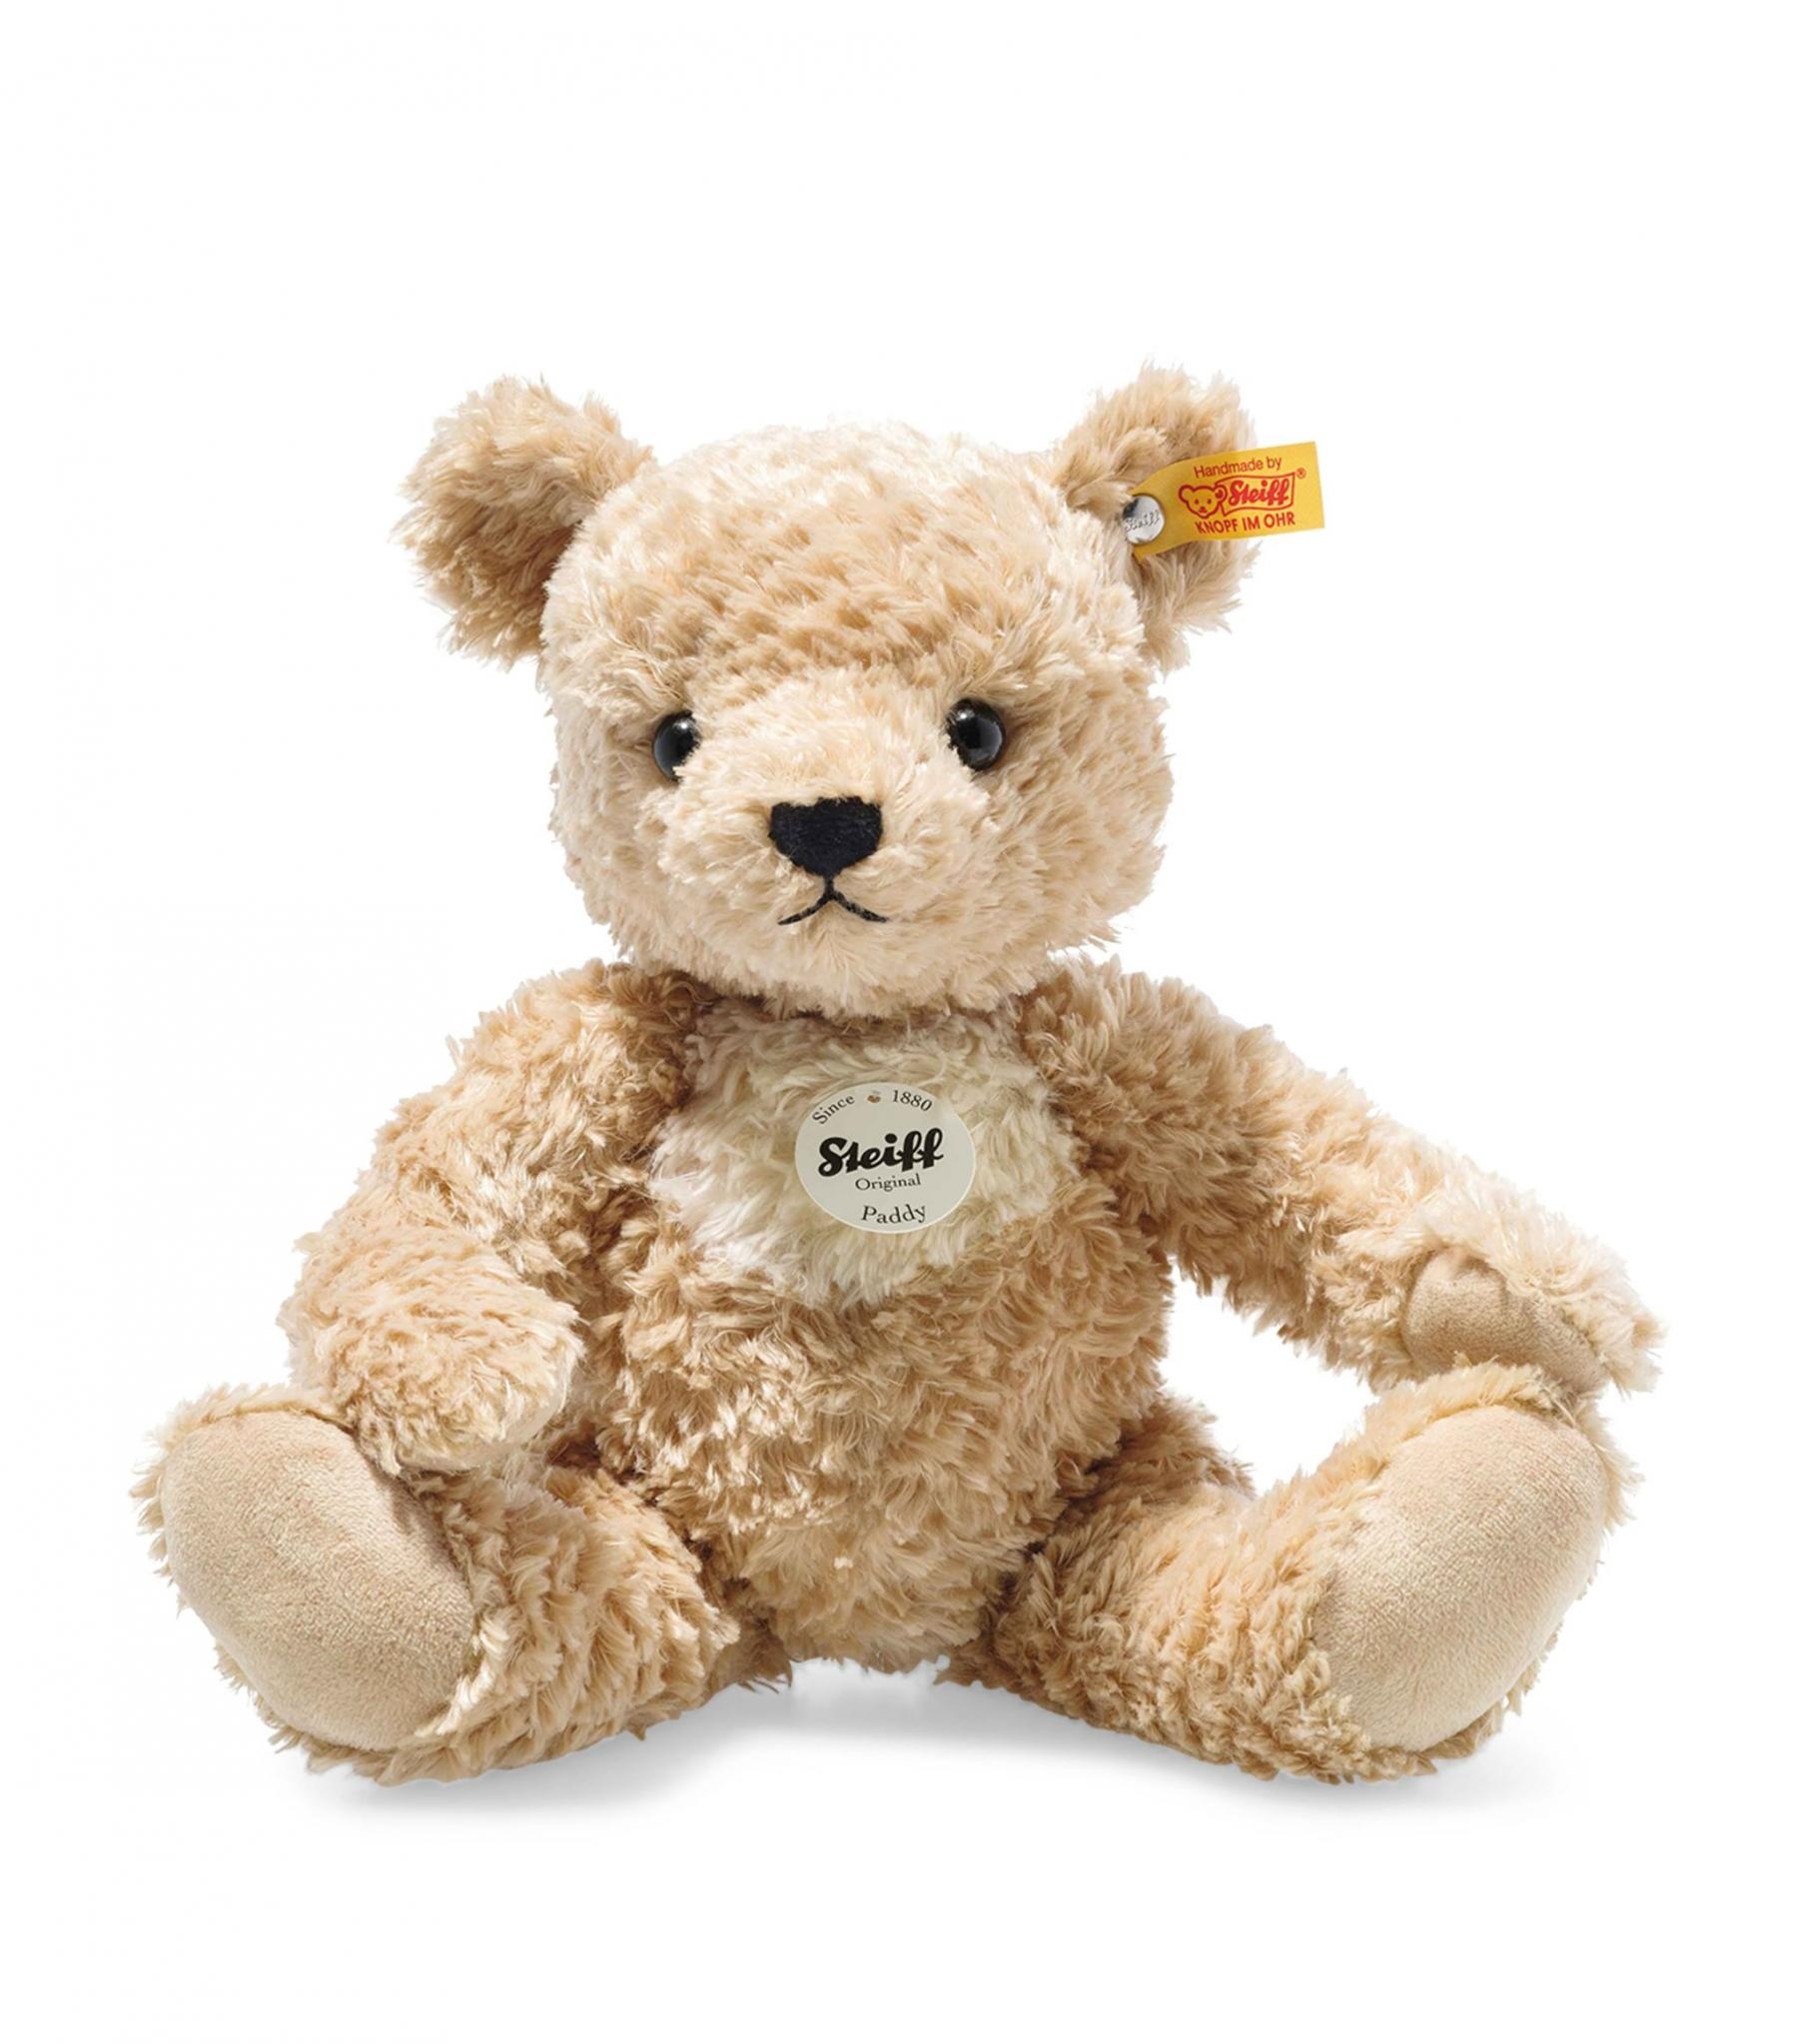 Sutffed teddy bear - best german toy